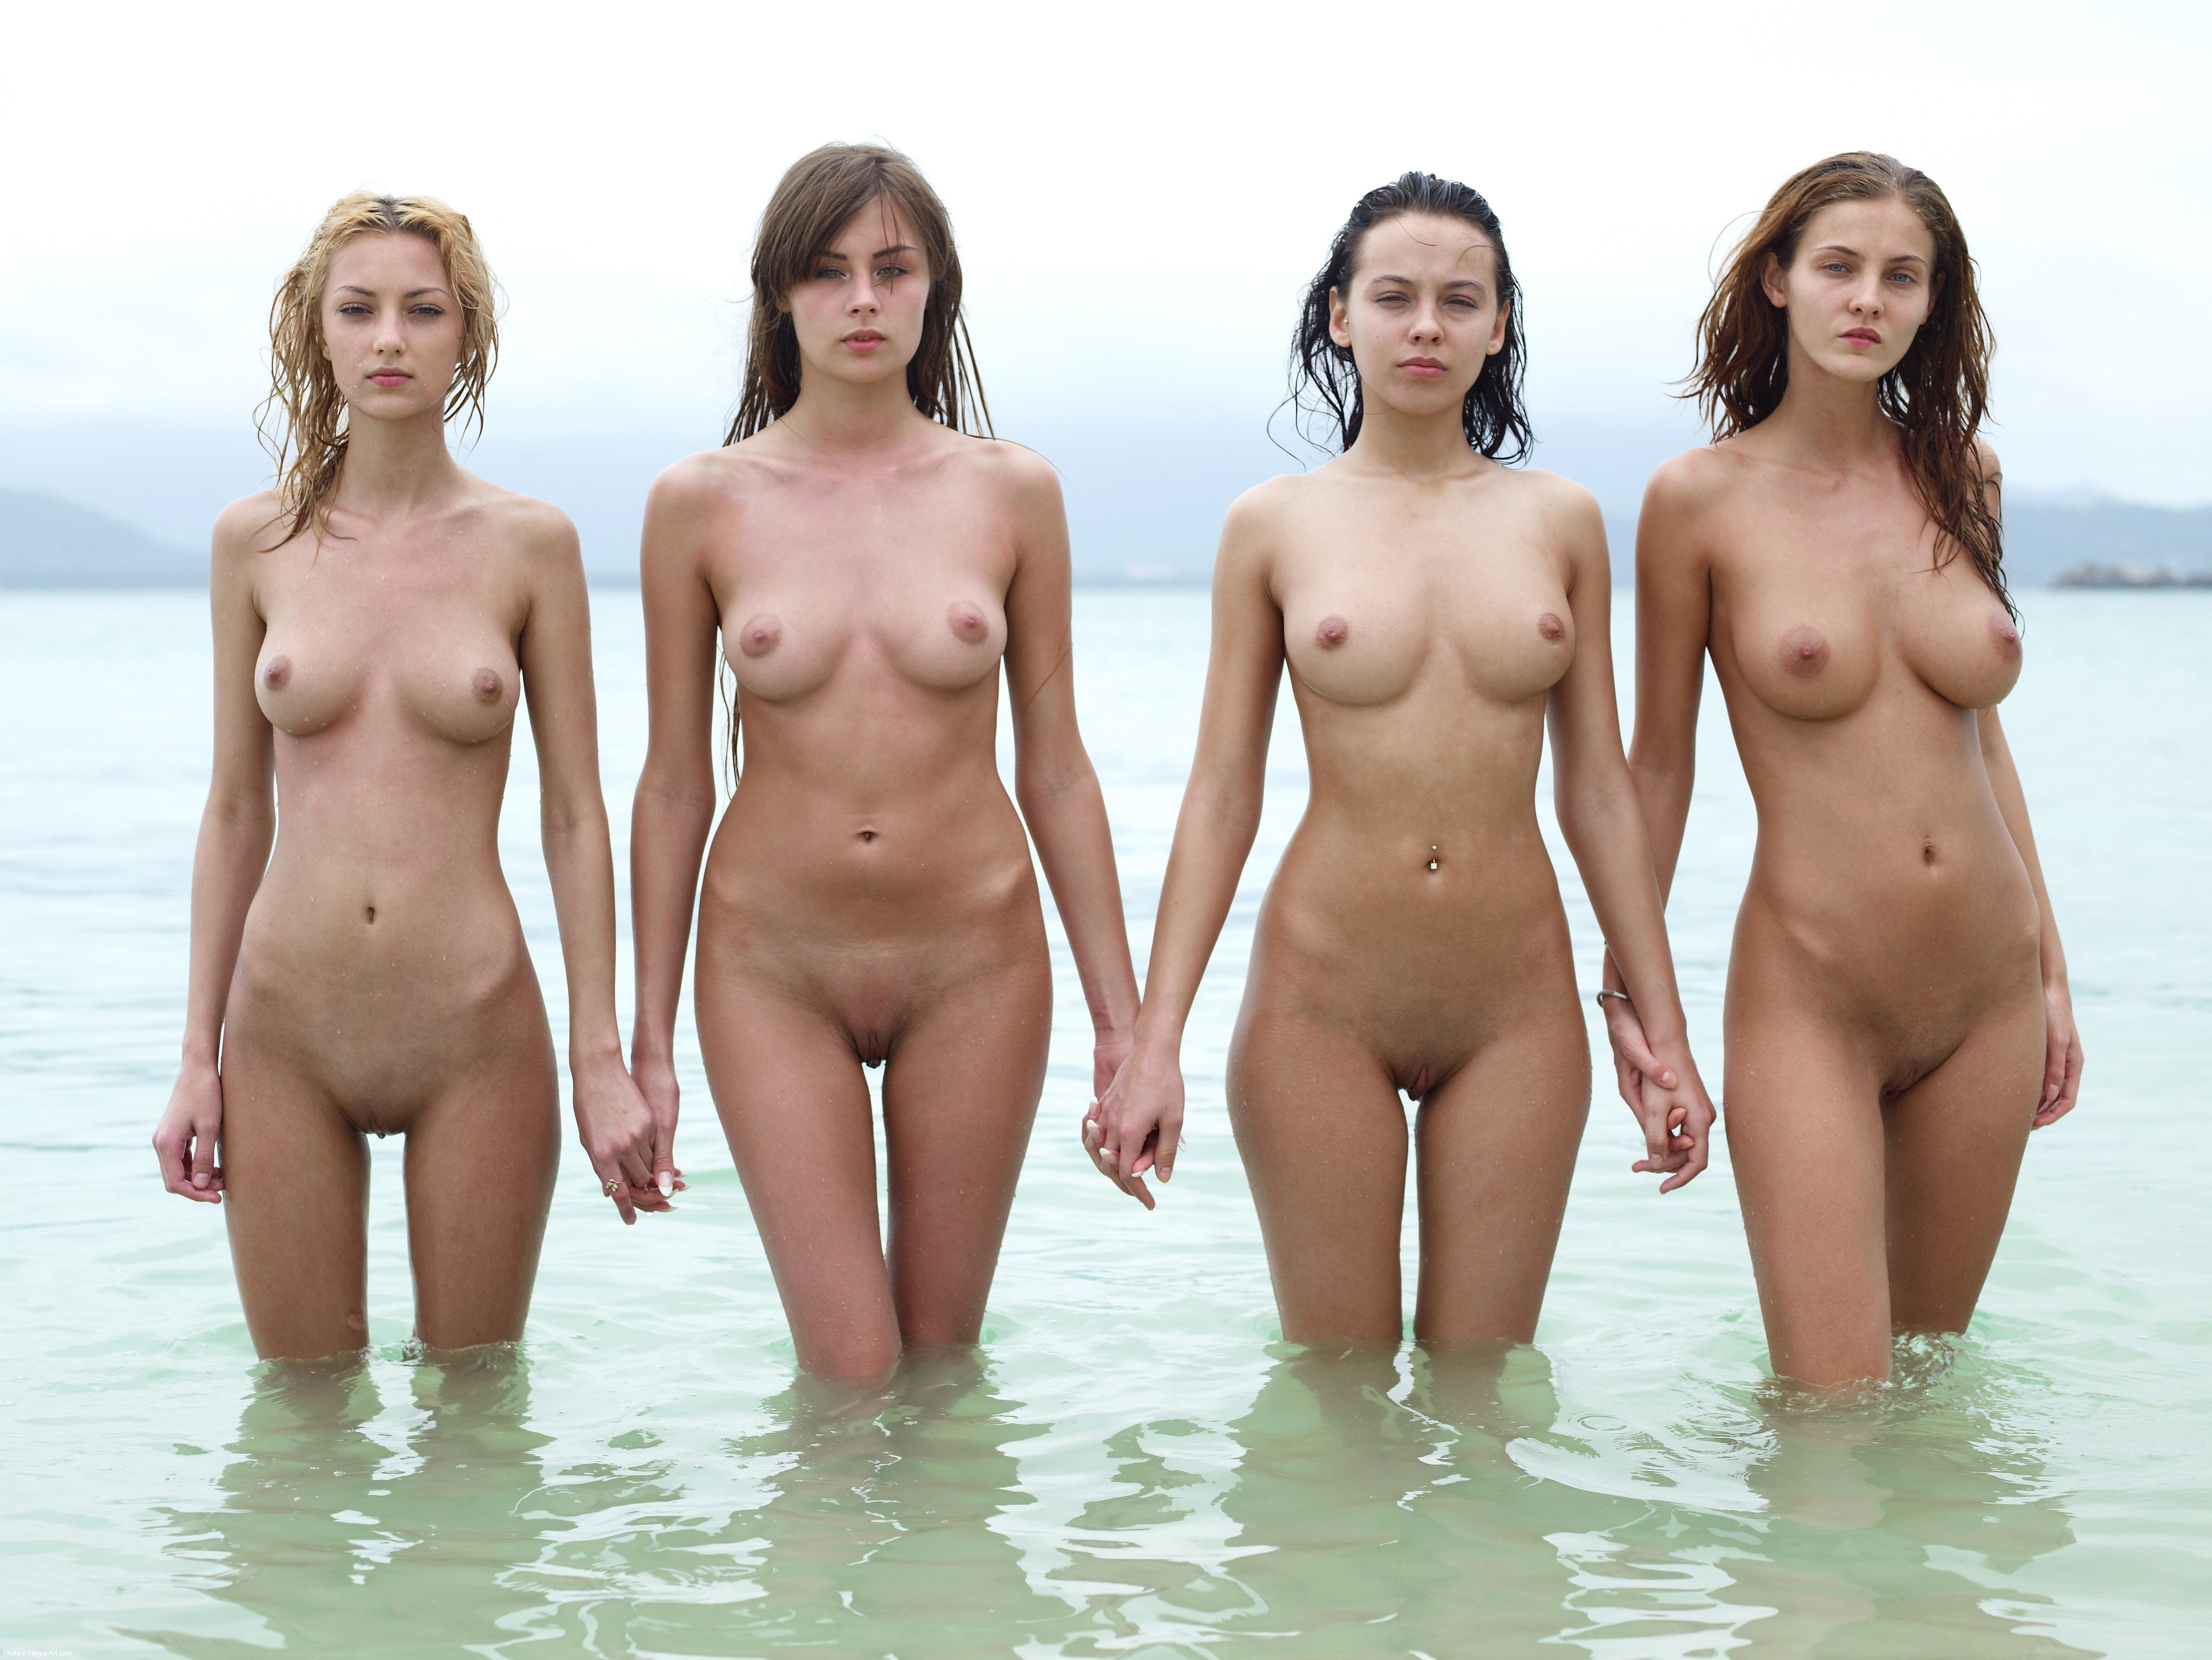 Groups of nude women touching porn Group Of Women Bottomless Hot Naked Pics Comments 1